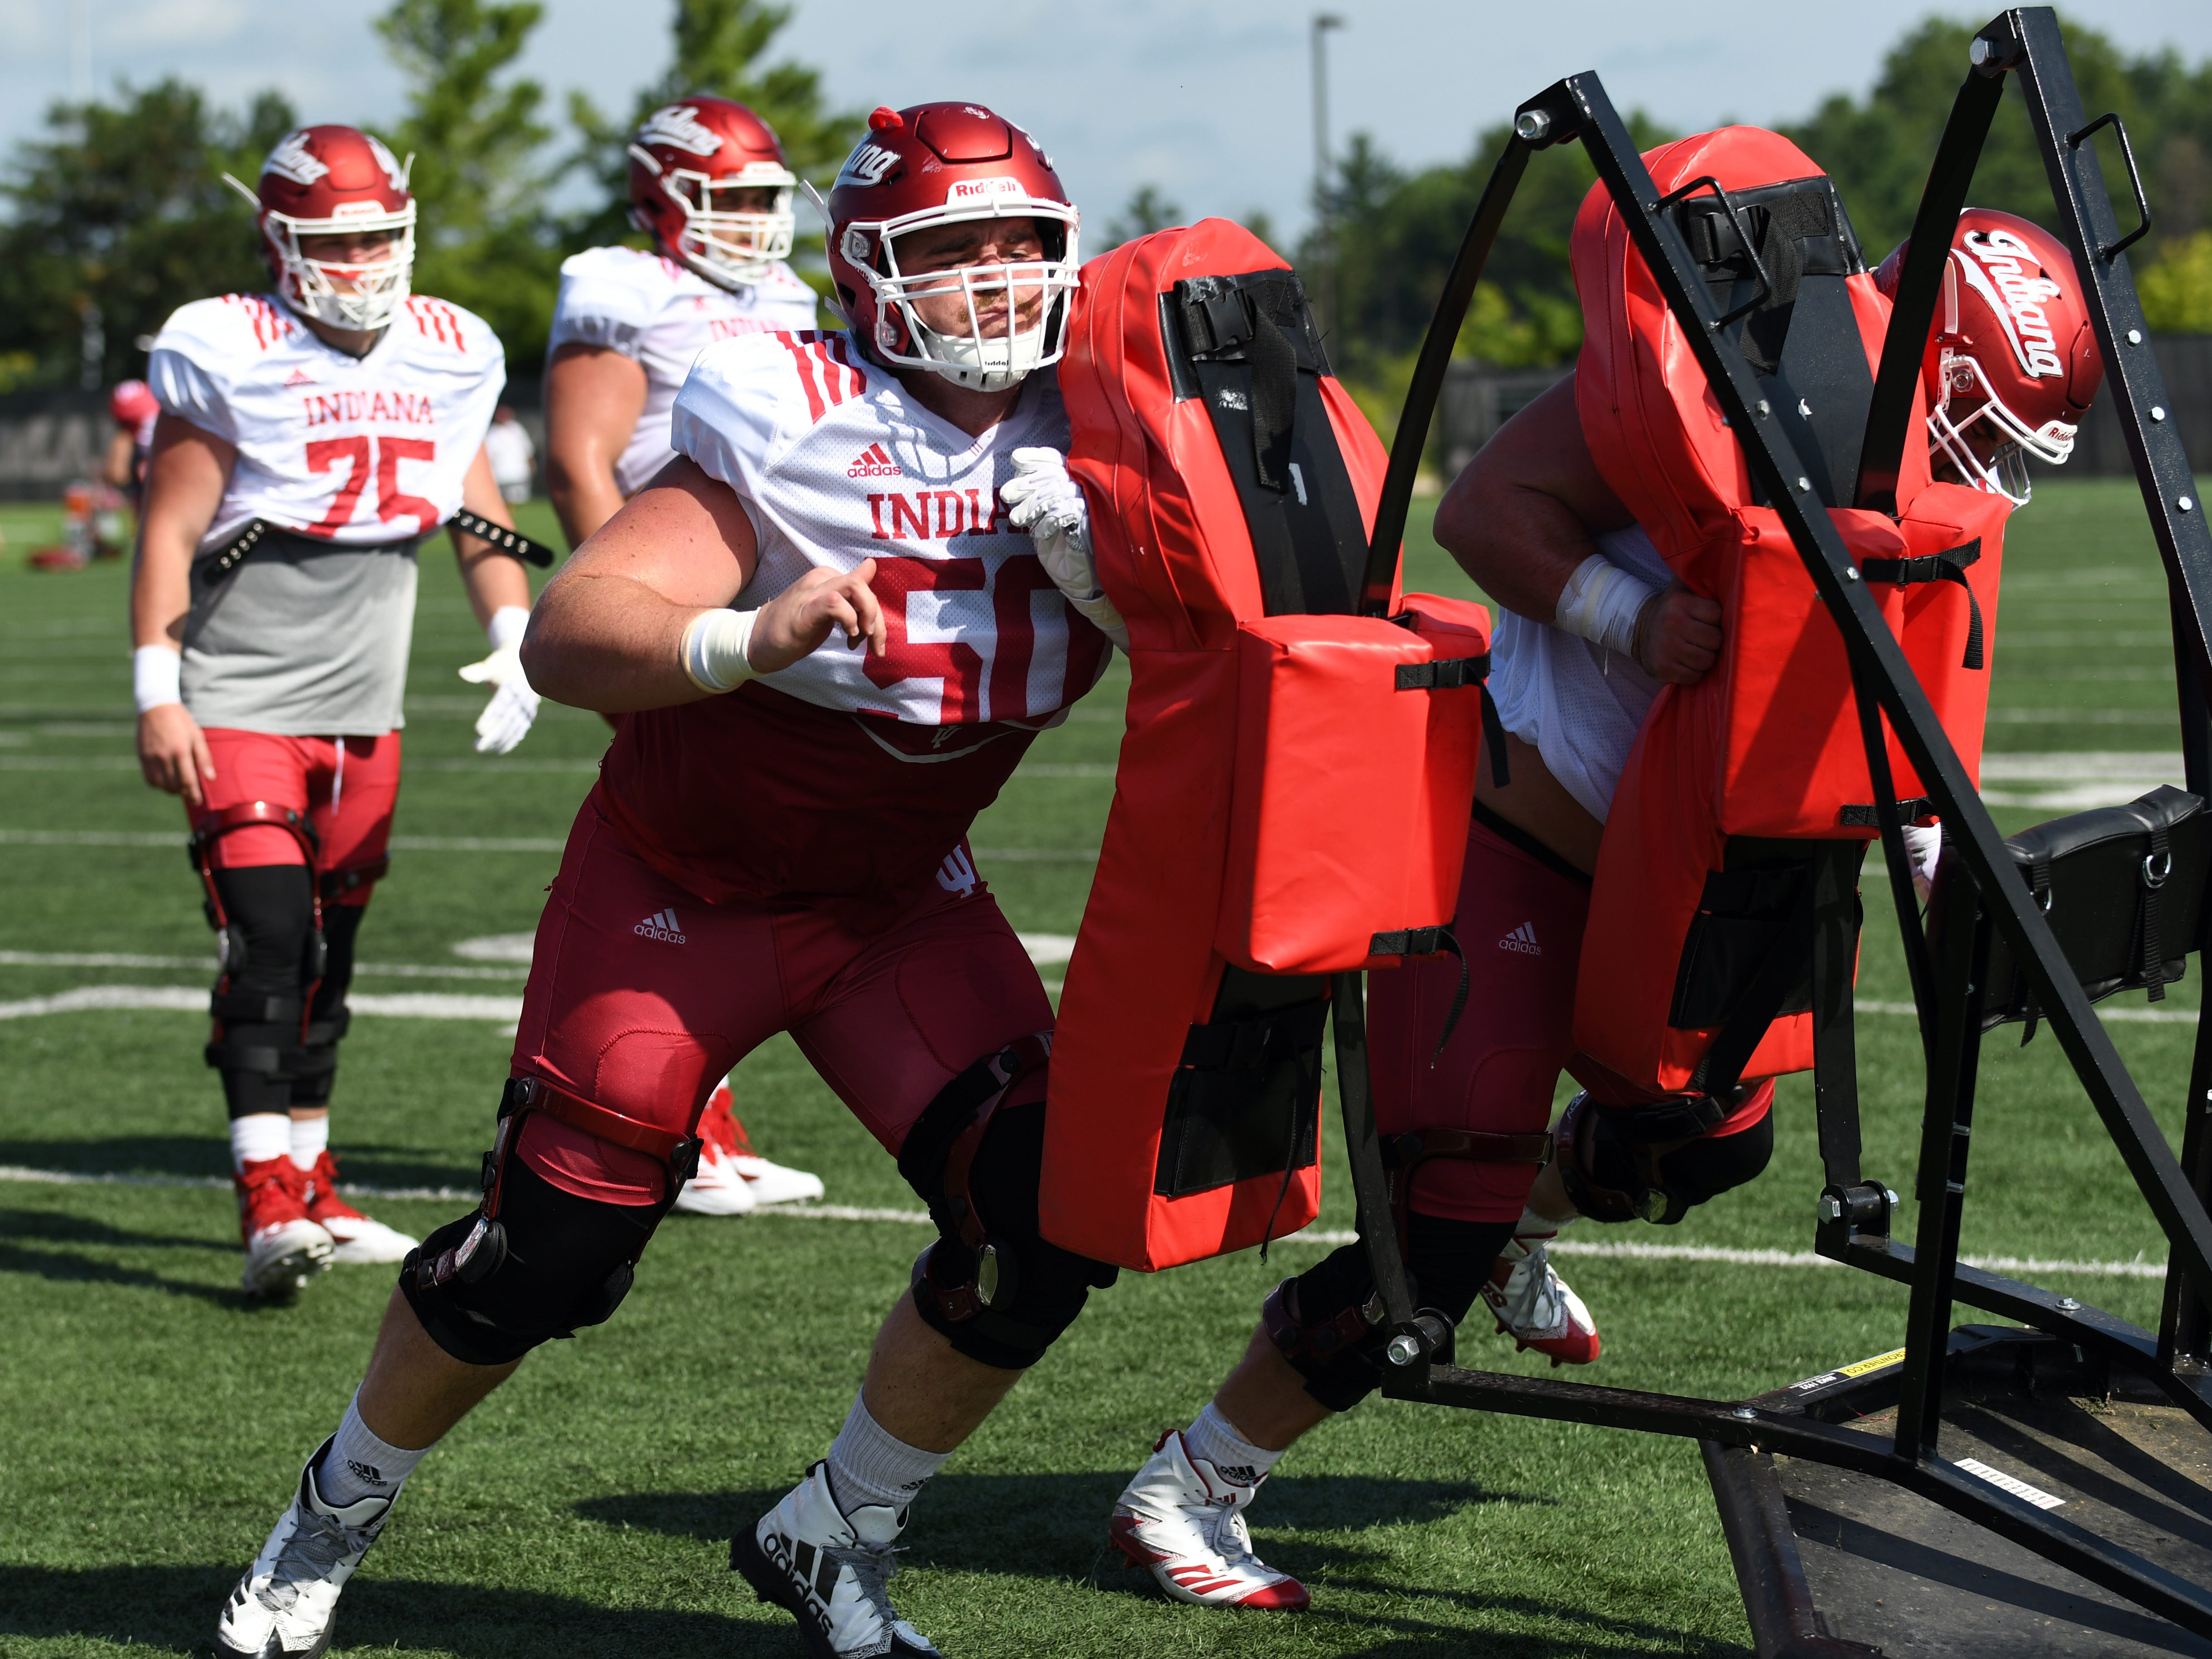 Indiana Hoosiers offensive lineman Nick Linder (50) participates in drills during practice at Mellencamp Pavilion in Bloomington, Ind., on Monday, August 6, 2018.